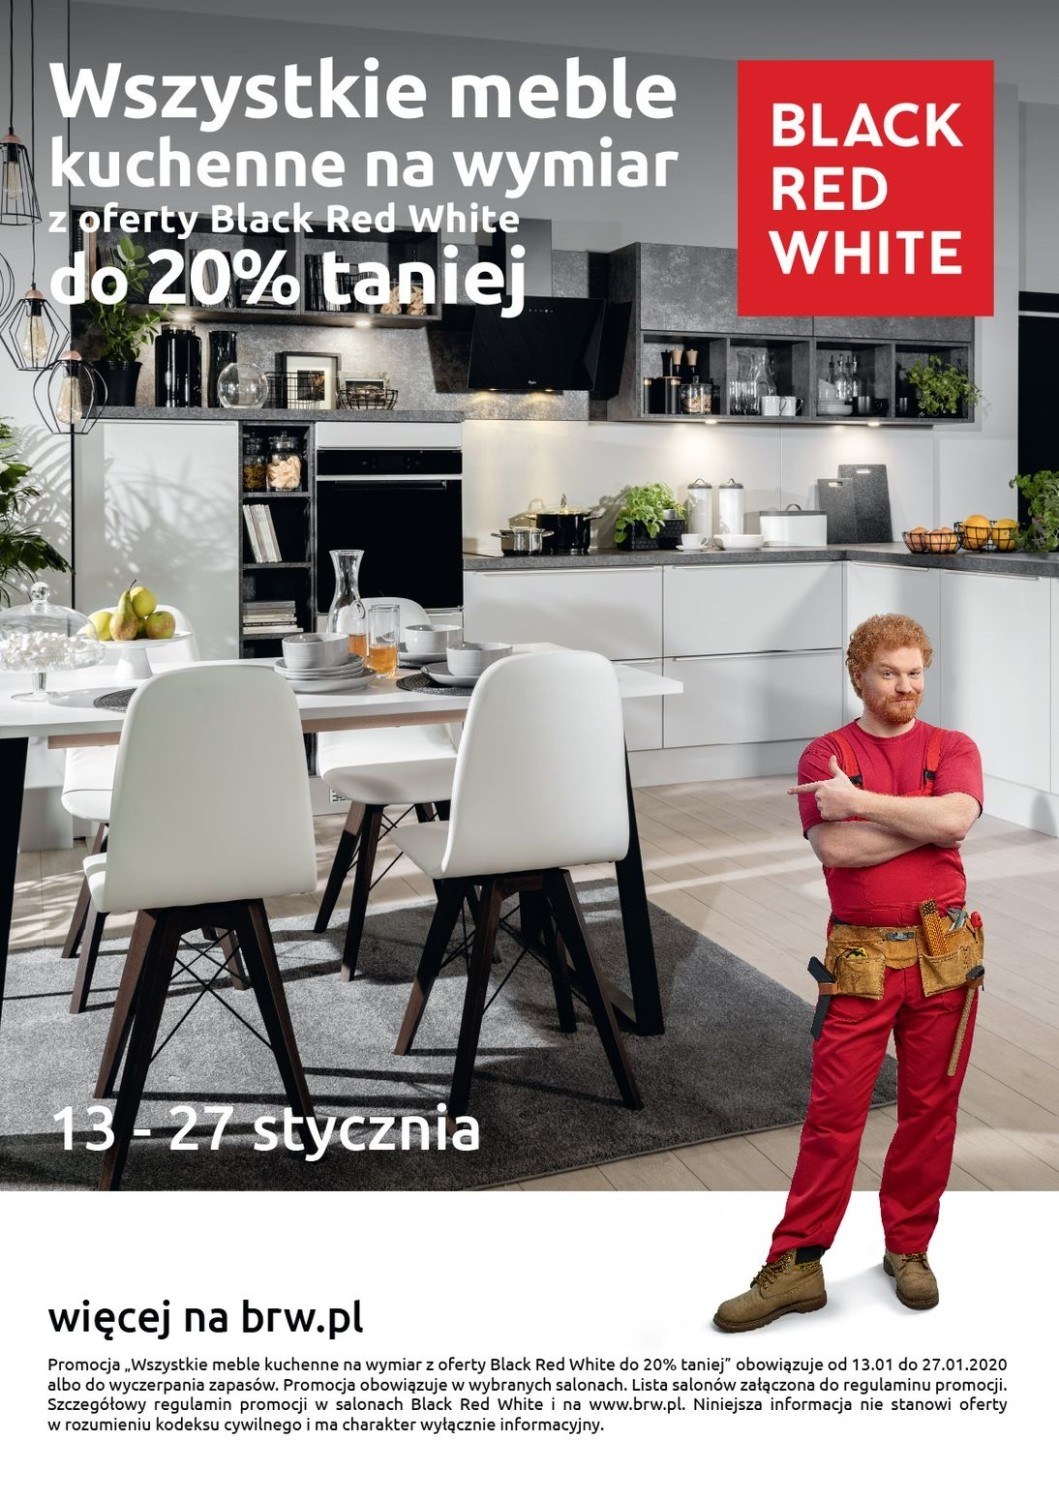 Gazetka Black Red White od 13.01.2020 do 27.01.2020